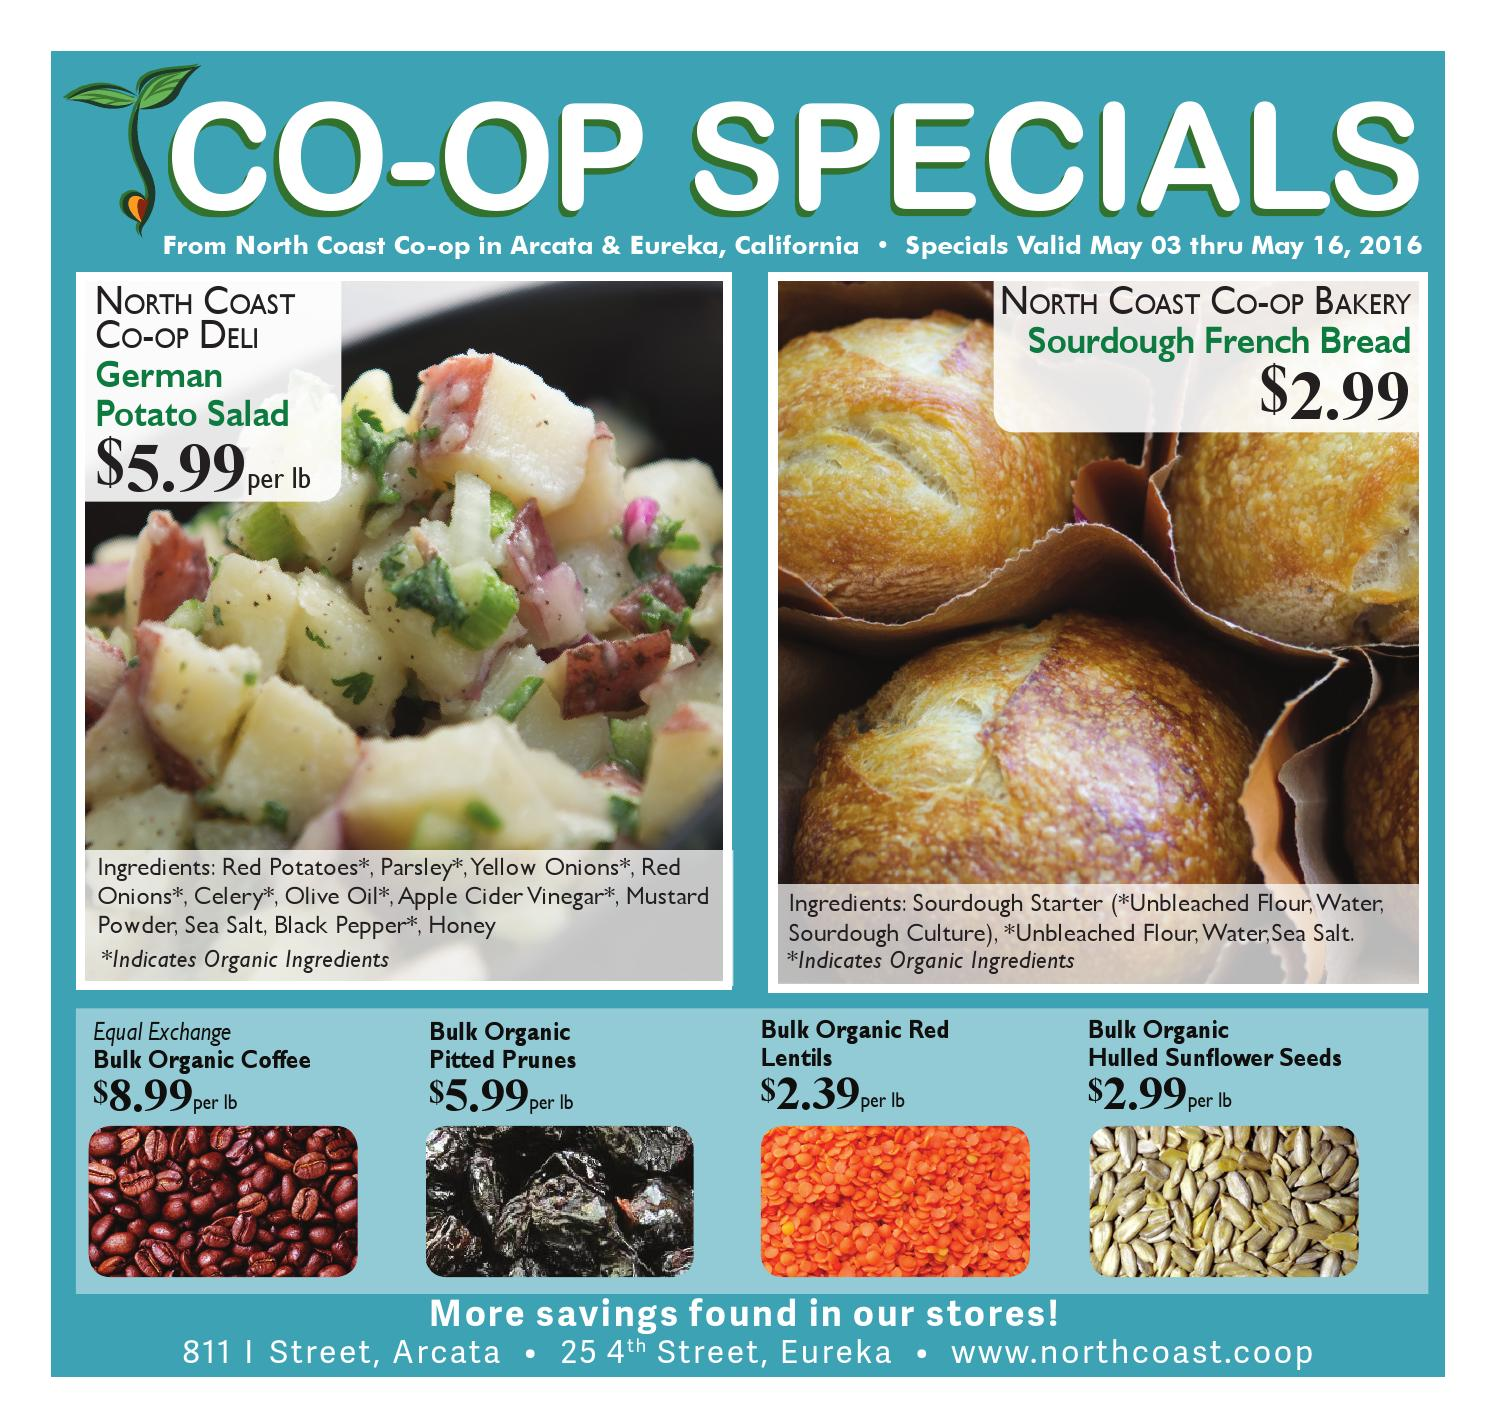 Co-op Specials May 3 though May 16 by North Coast Co-op - issuu